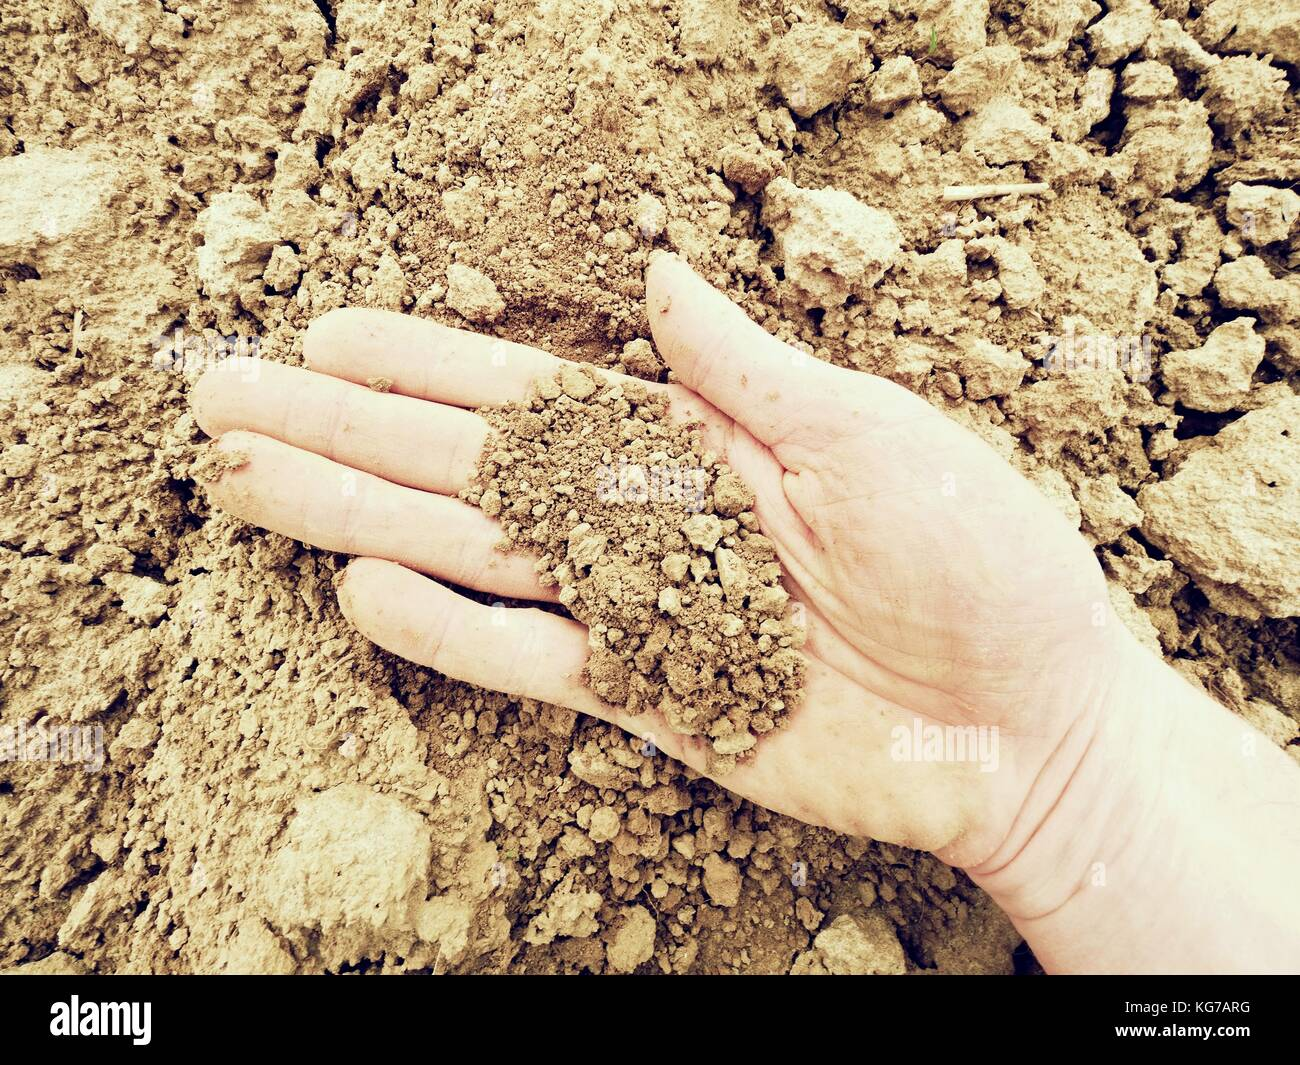 pink skin hand looking for something in wet brown clay in the field